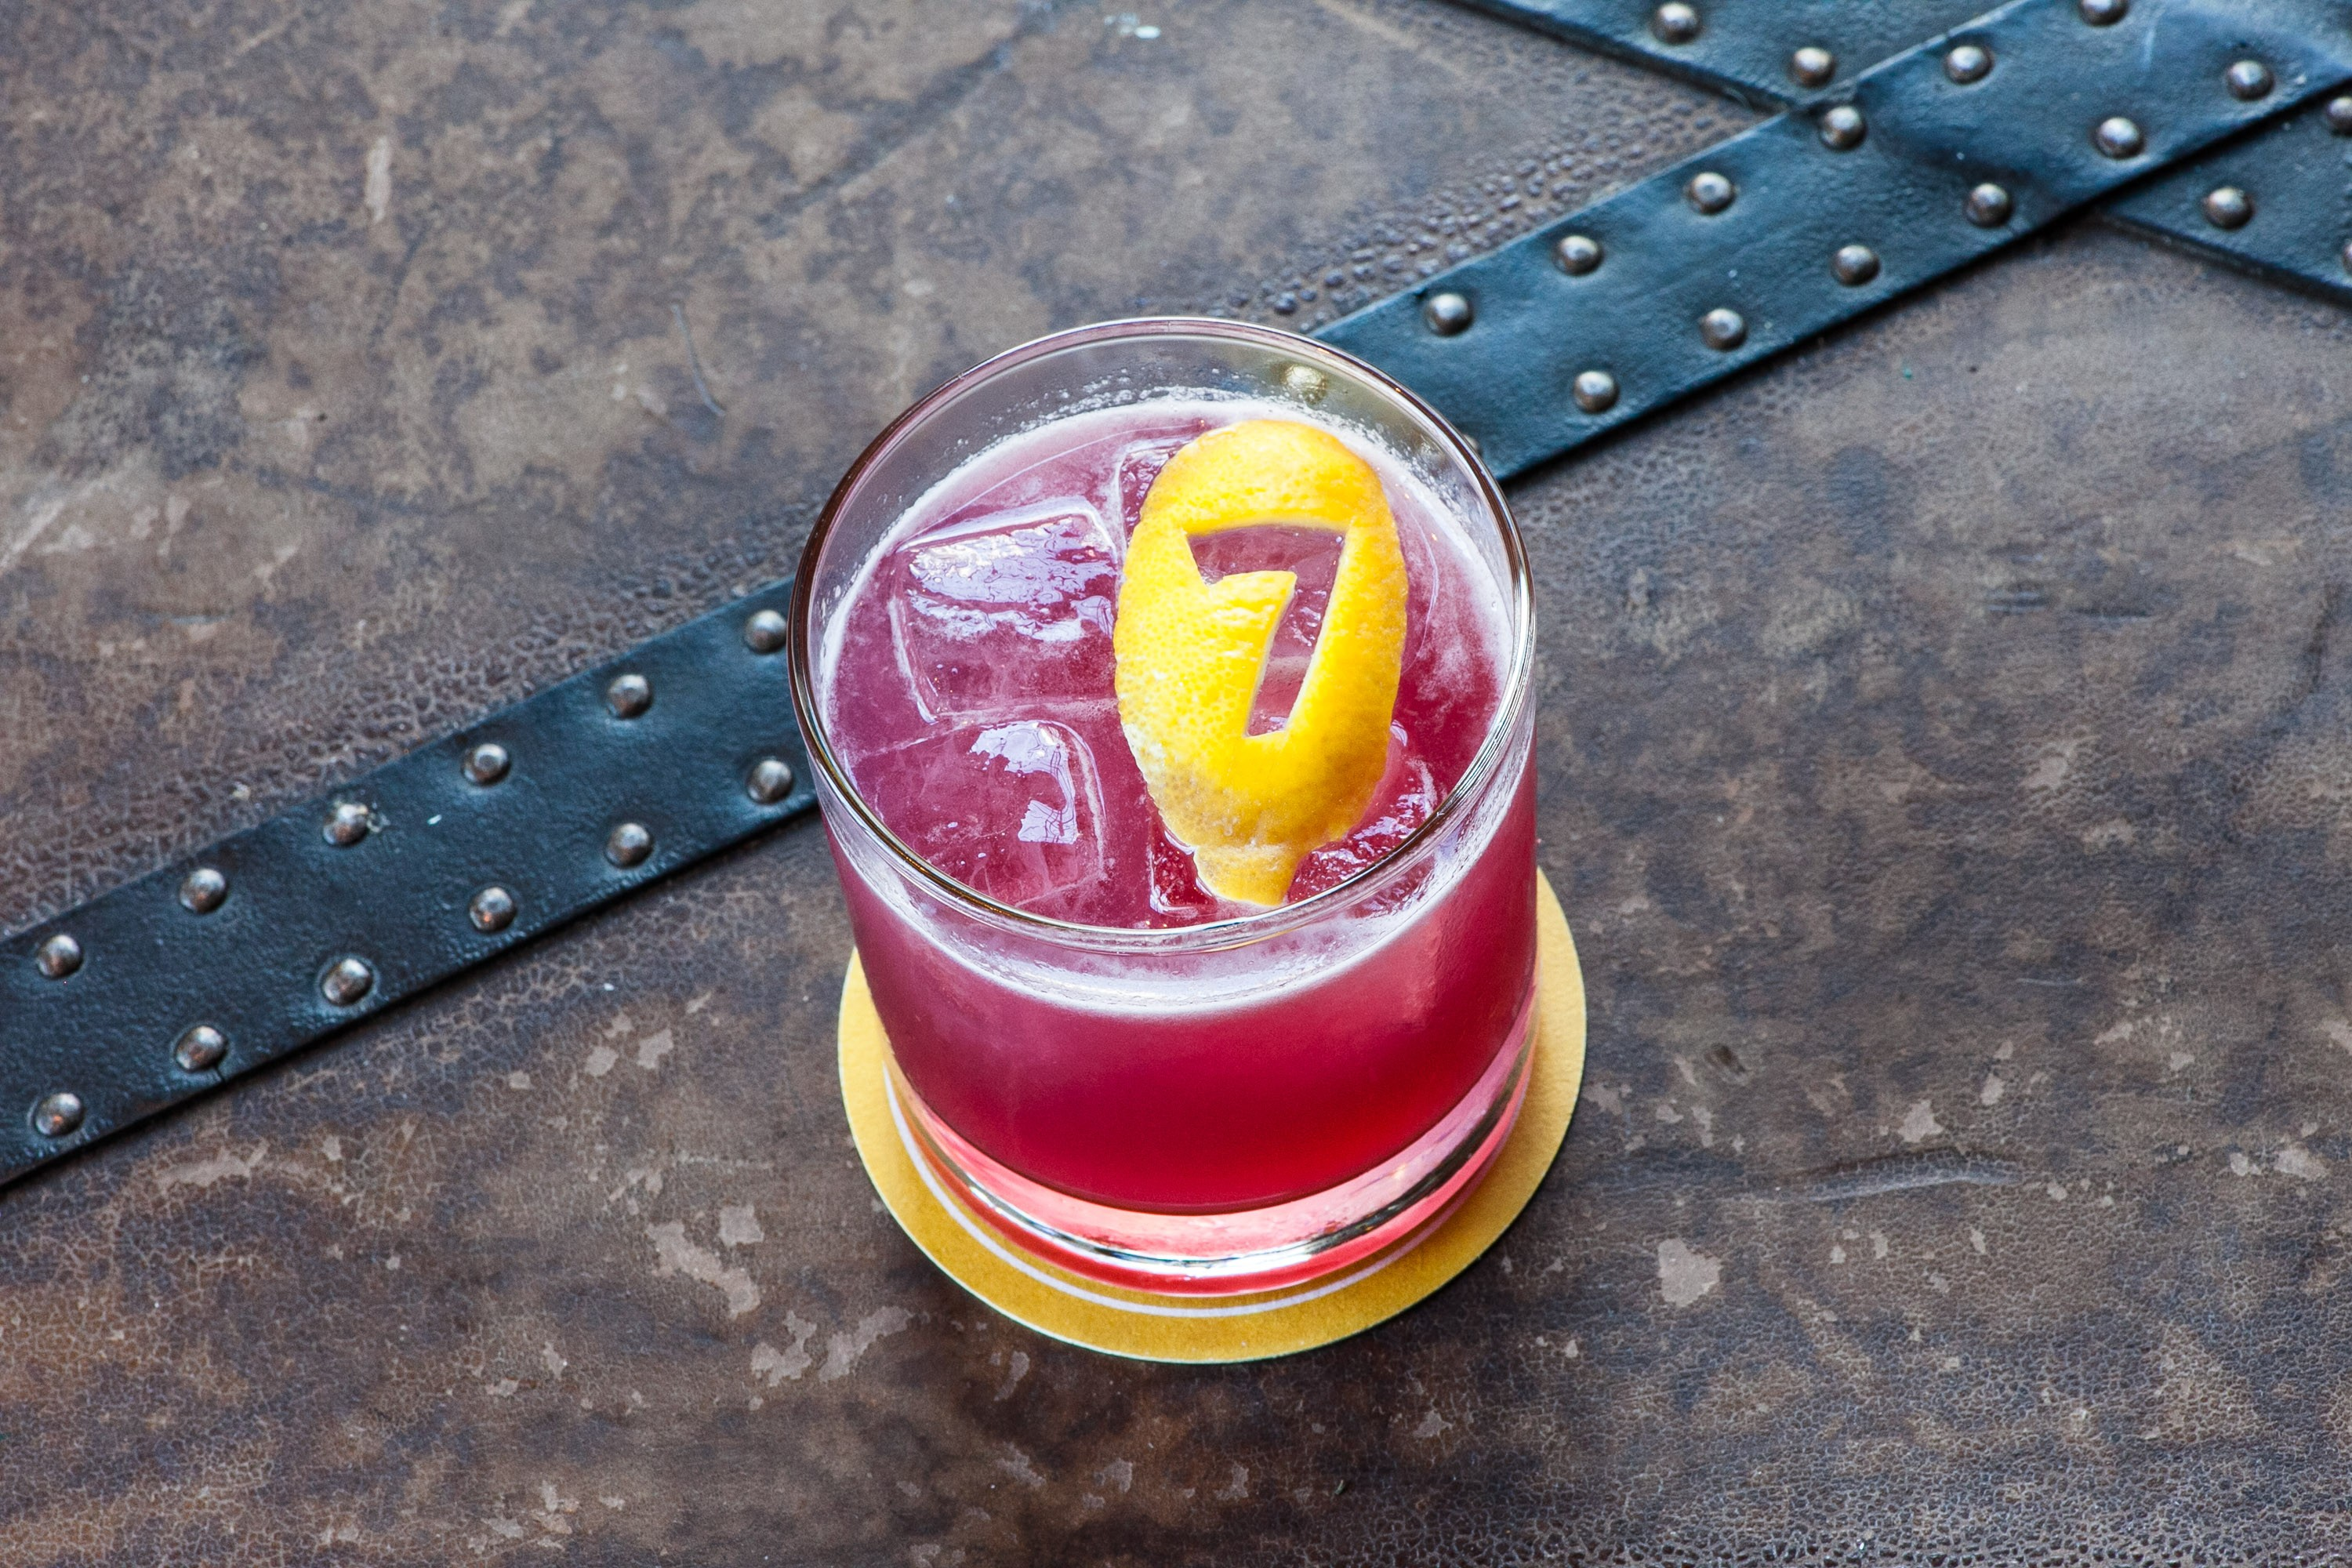 A violet-tinted cocktail: The Train's a-Comin'.